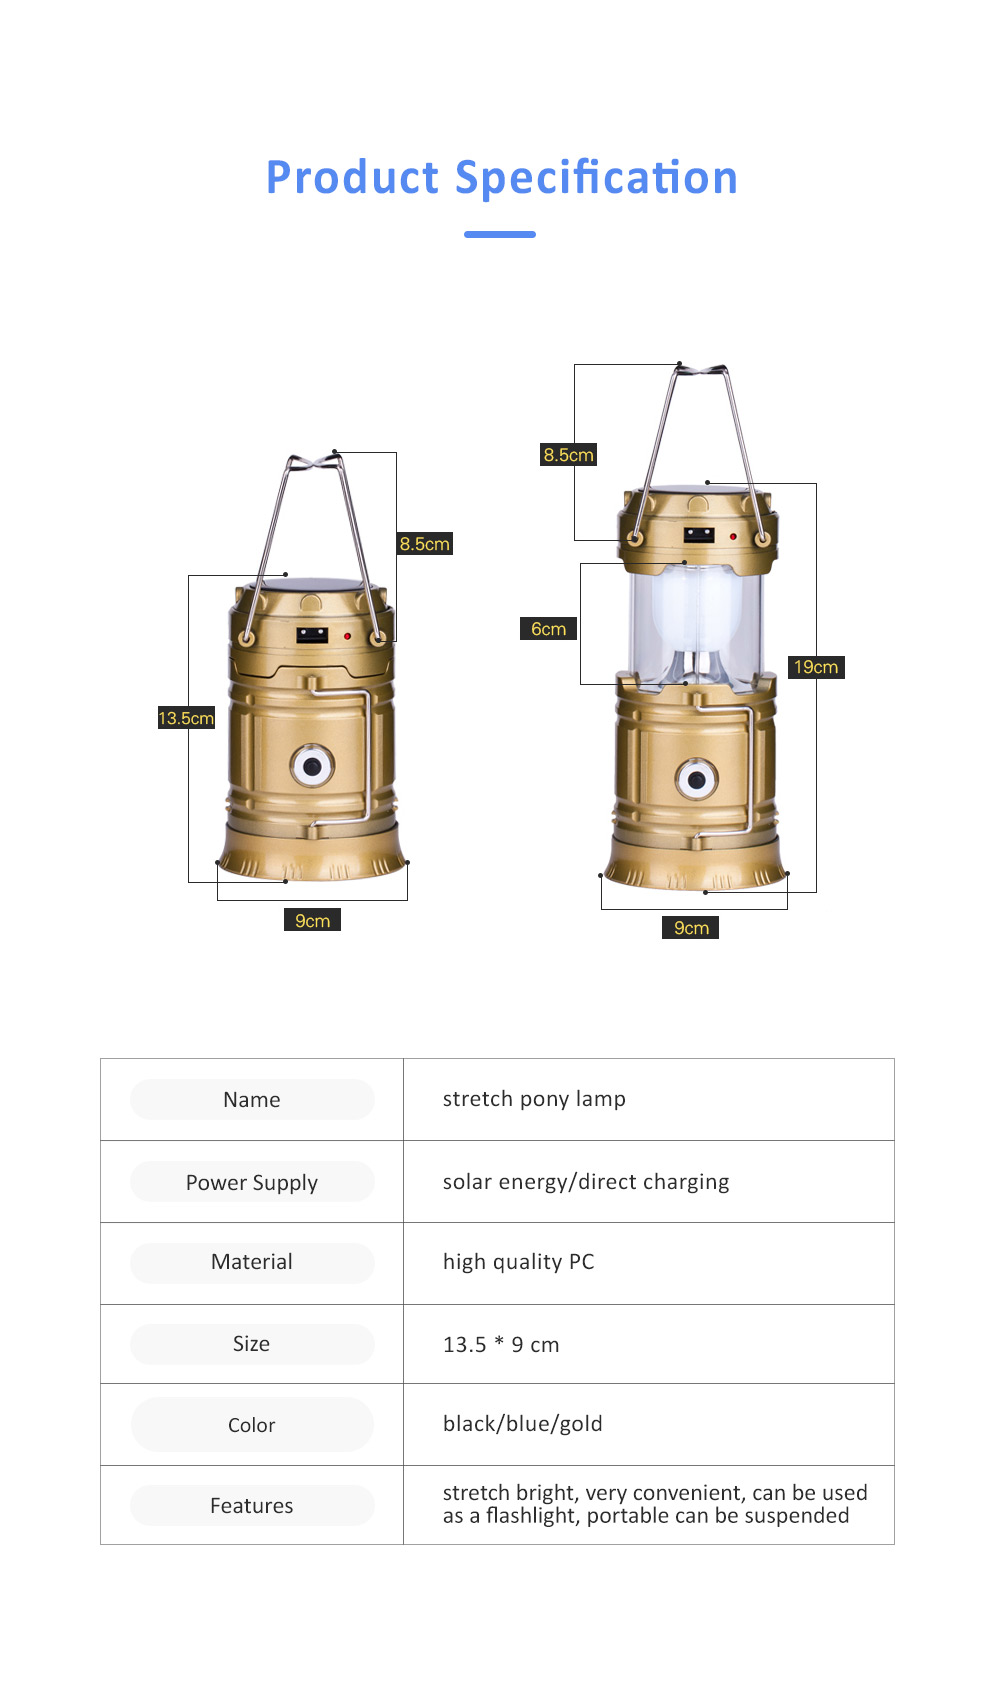 Stretchable Brightened Lantern for Camping, Hinking, Outdoors, Multifunctional Camping Lamp with Removable Hook, Two Charging Modes Lights 6